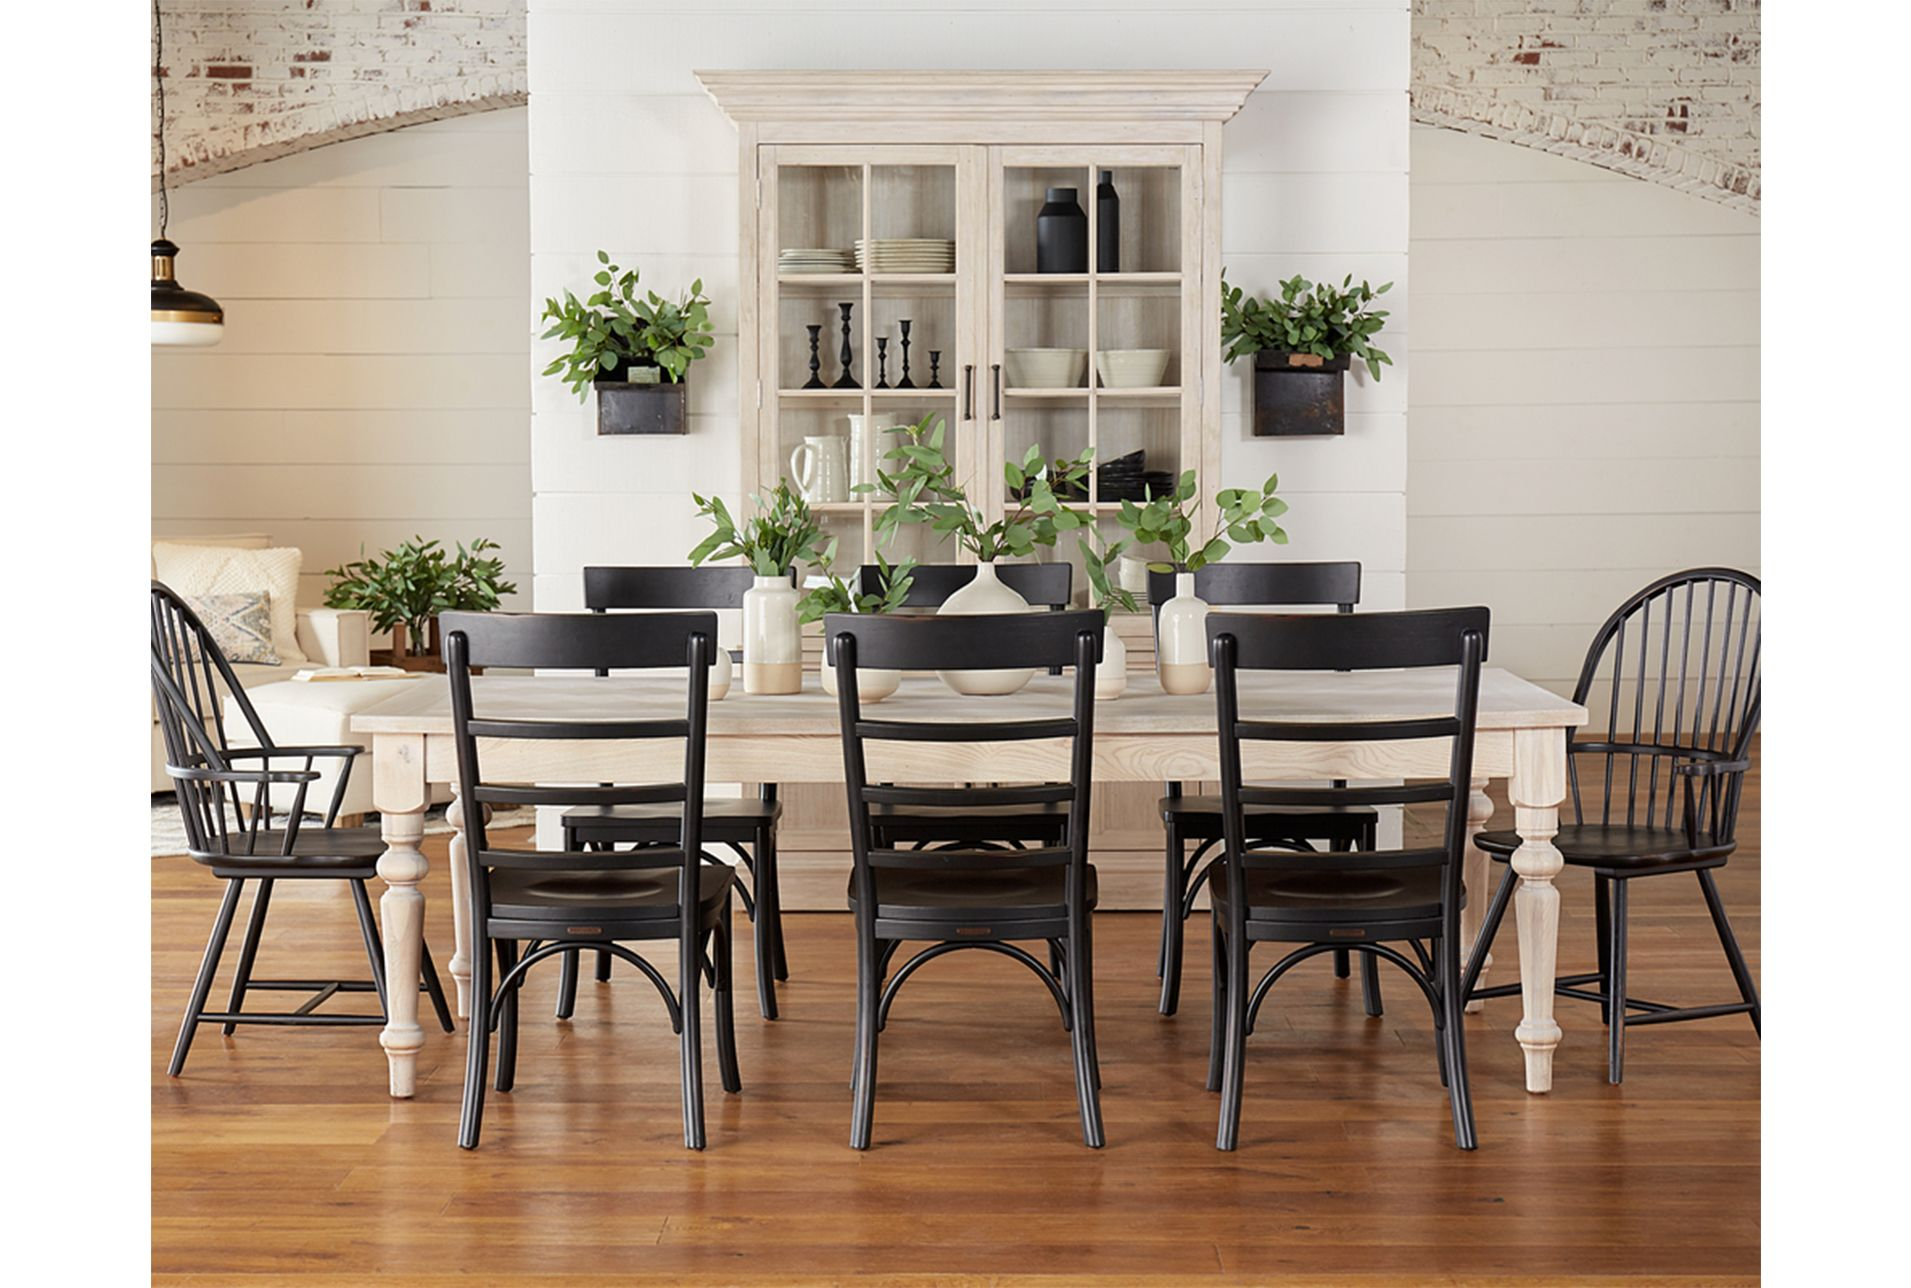 Magnolia Home Prairie Dining Table By Joanna Gaines Joanna Gaines Dining Room Magnolia Home Dining Table Interior Design Dining Room